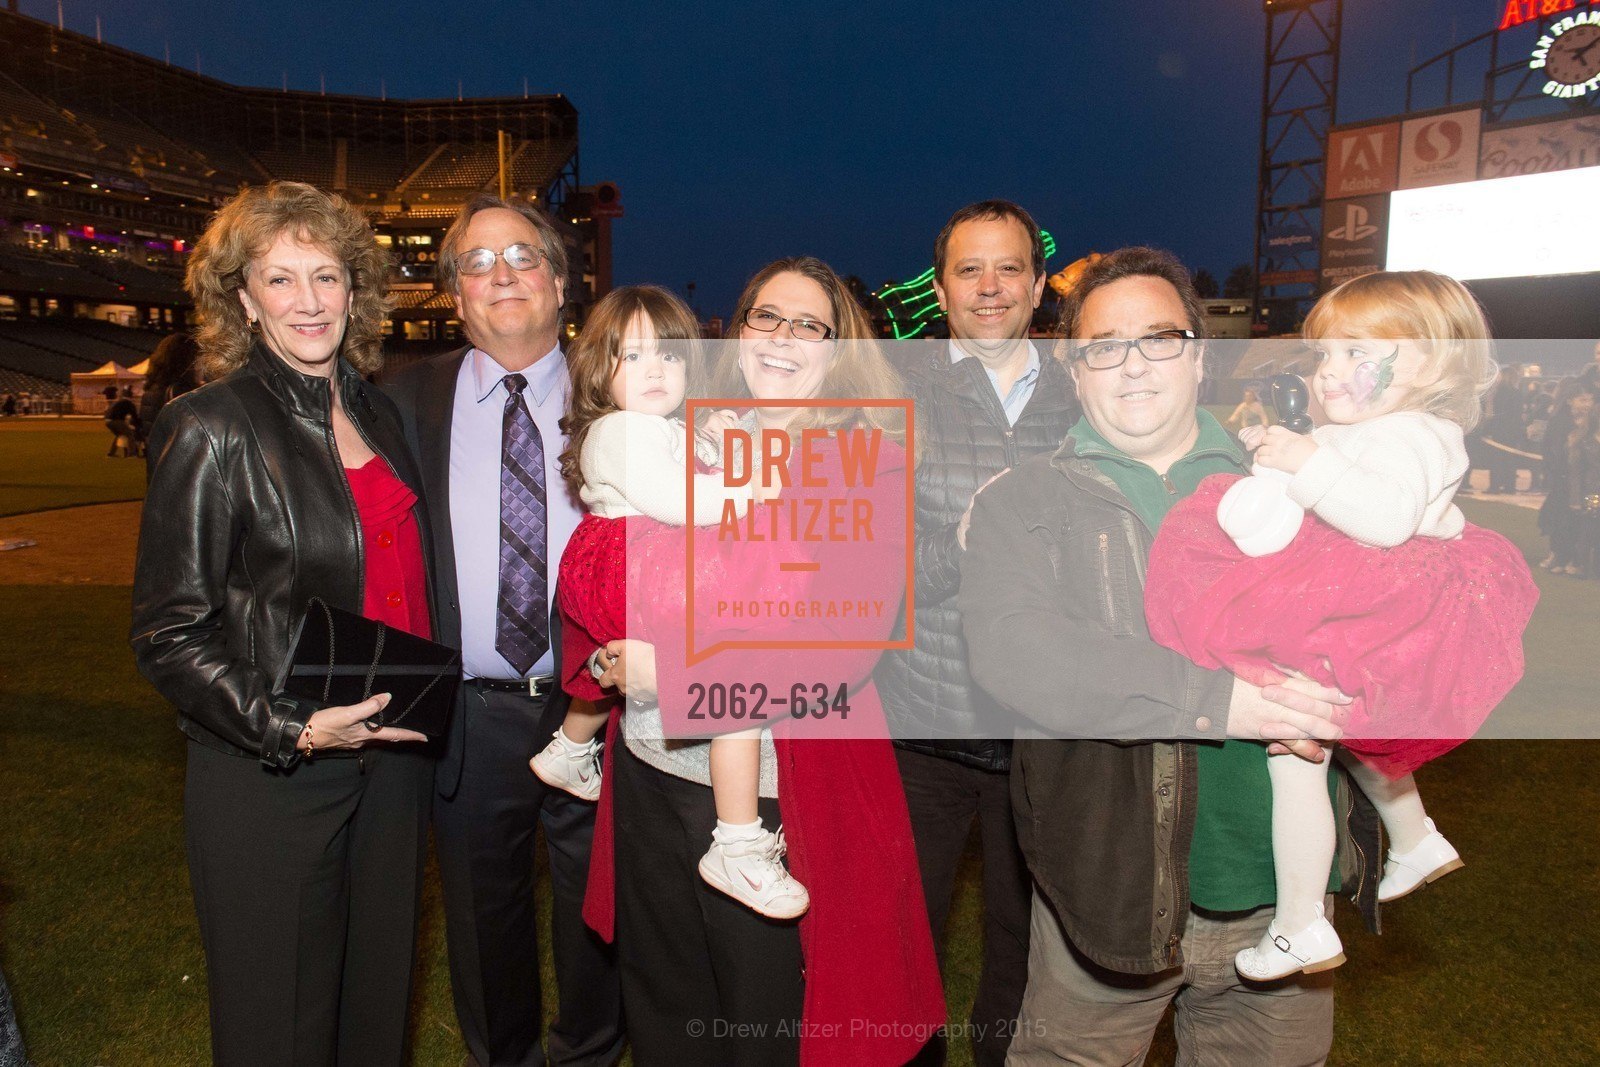 Liane Baker, Michael Baker, Cecilia Flanagan, Catherine Flanagan, Mark Flanagan, Chris Flanagan, Lily Flanagan, Holiday Heroes 2015, AT&T Park, December 7th, 2015,Drew Altizer, Drew Altizer Photography, full-service agency, private events, San Francisco photographer, photographer california